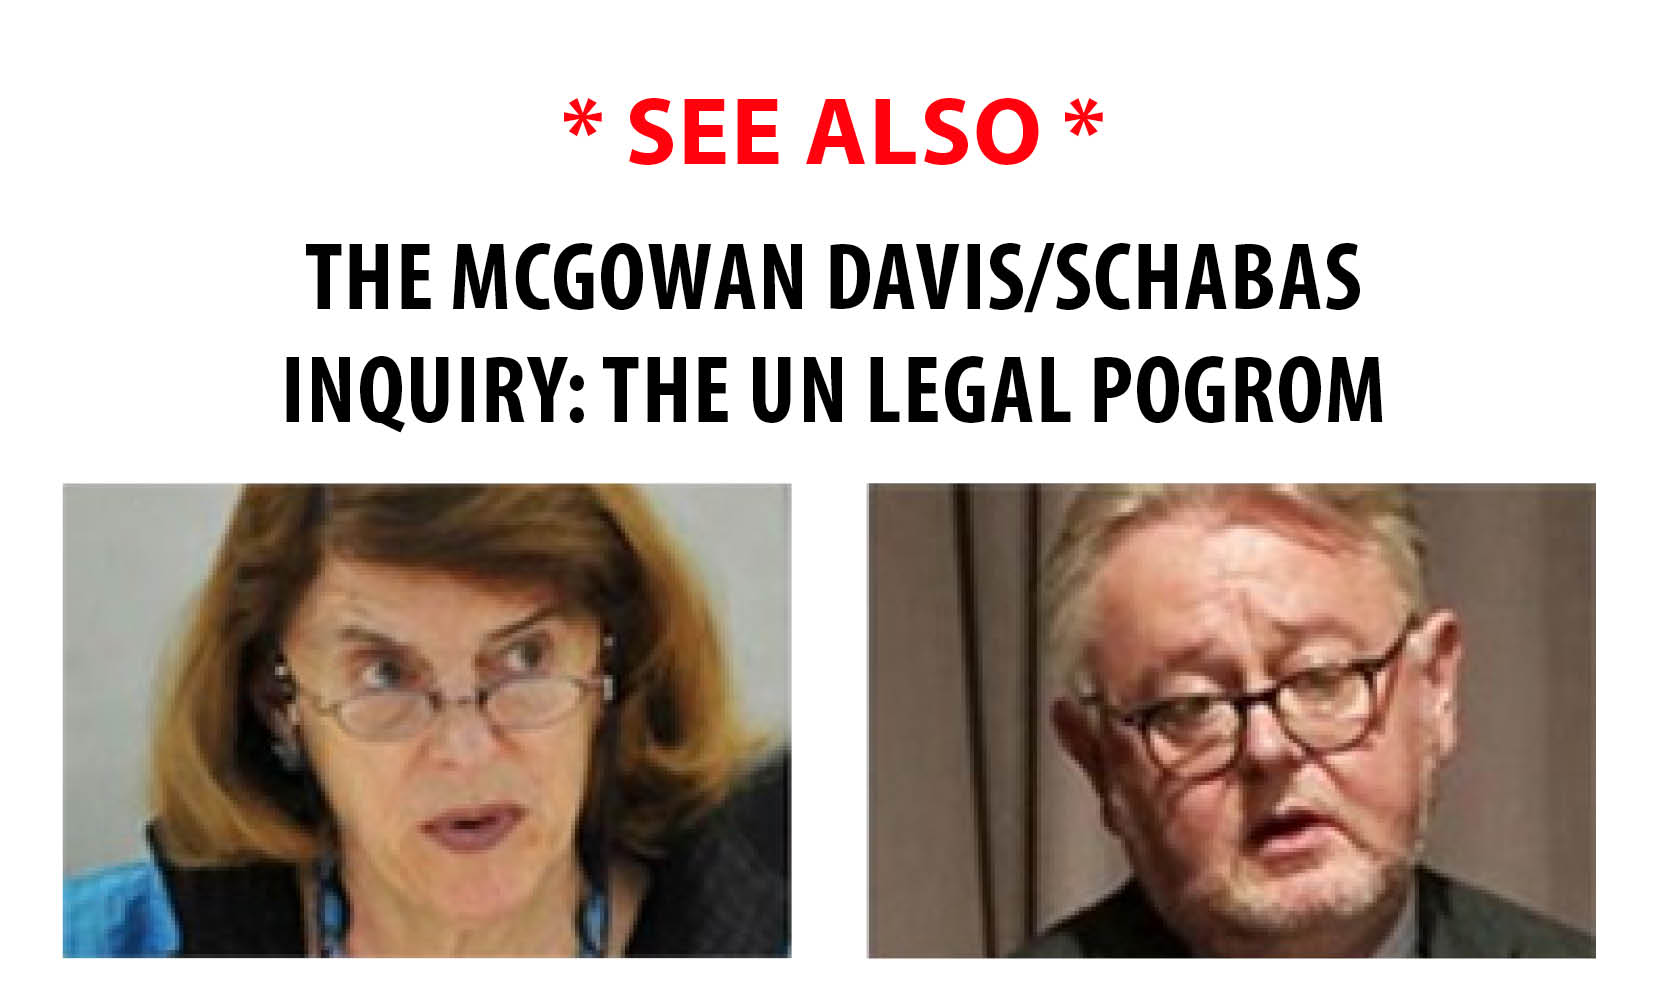 See also: The McGowan Davis / Schabas Inquiry: The UN Legal Pogrom